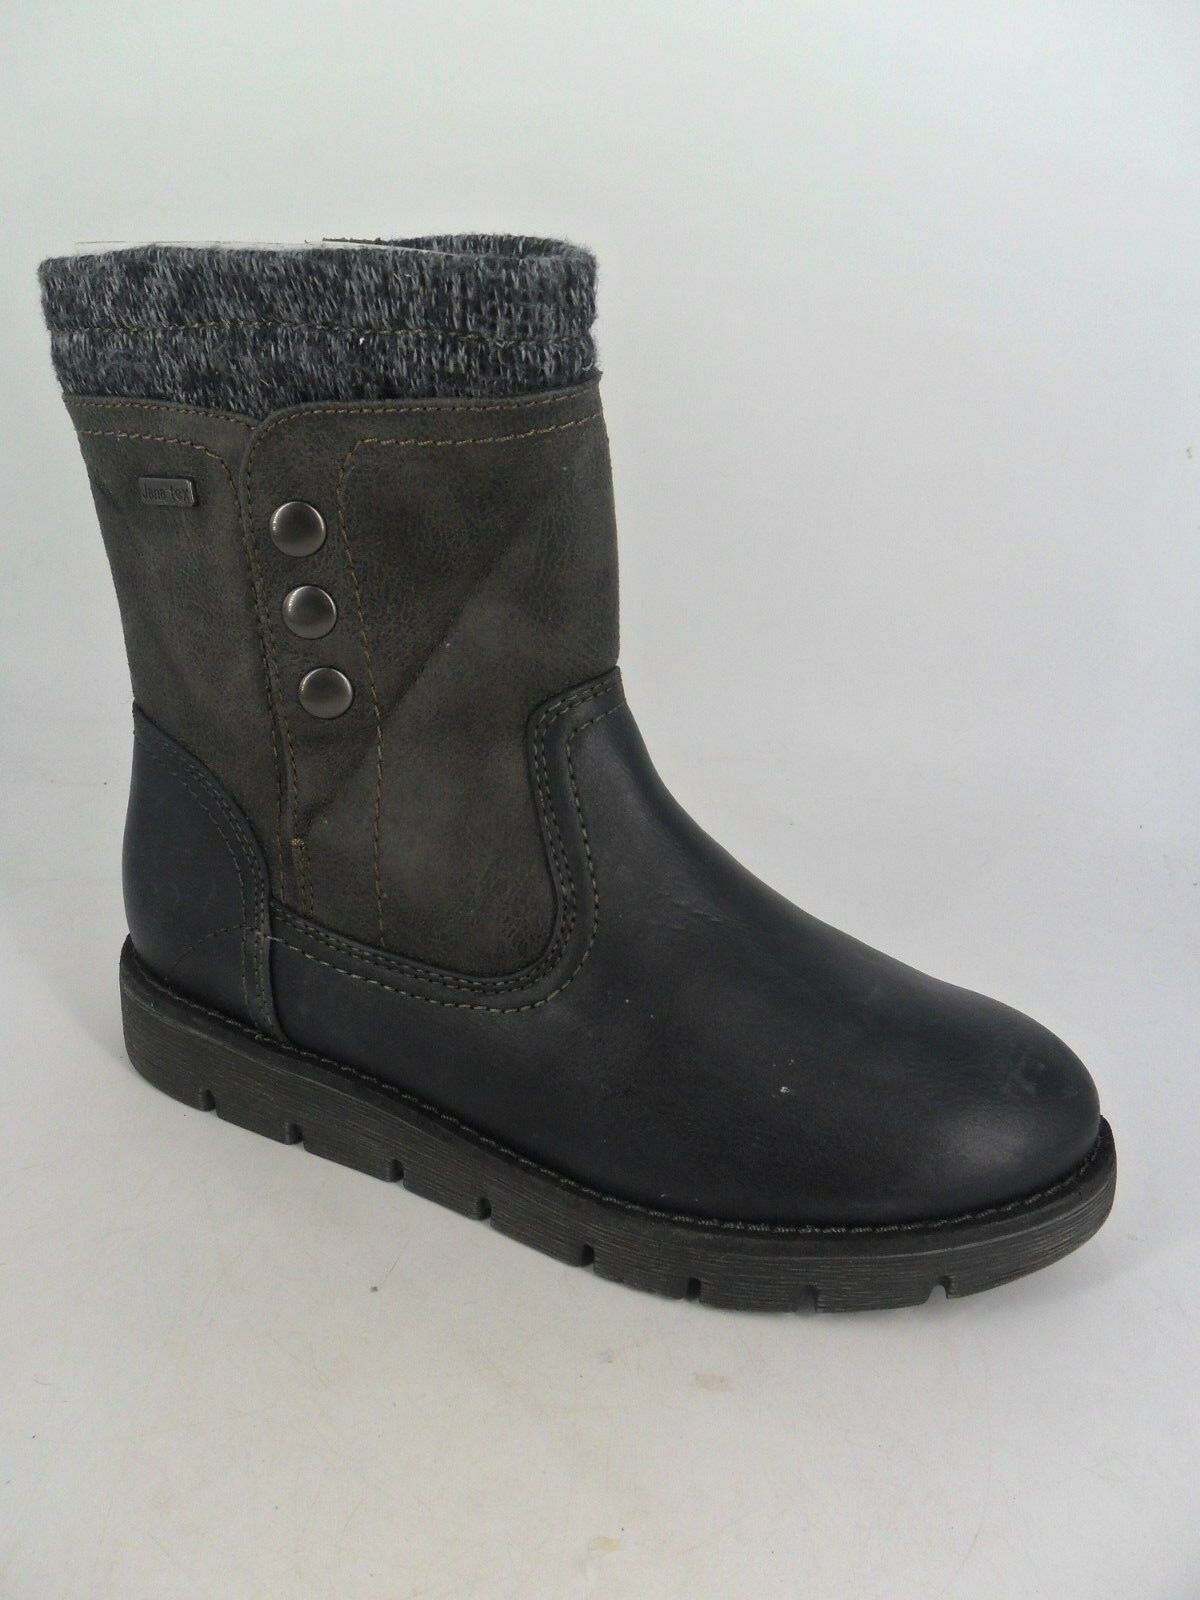 Jana Tex Soft Flex UK Fur Lined Navy Stiefel UK Flex 6.5 EU 40 LN088 AN 07 01b102